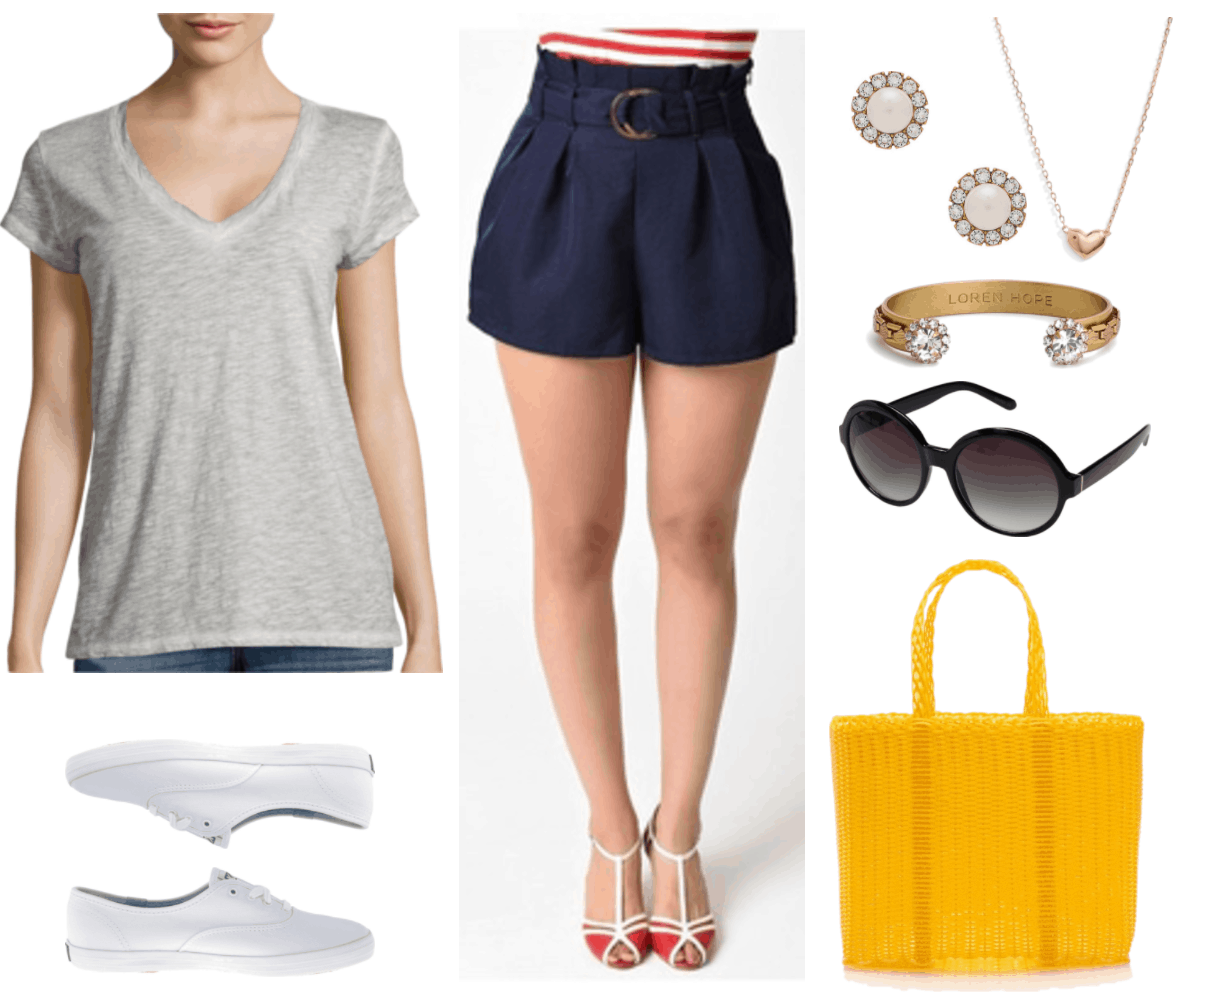 """Ask CF: How Can I Dress More Maturely Without Looking Boring?"" Outfit #3 featuring light-gray relaxed-fit v-neck short-sleeved t-shirt with fading at the seams, white canvas lace-up Keds sneakers, navy blue pleated high-waisted paper-bag shorts with belt, pearl earrings with surrounding clear crystals, gold heart necklace with tiny ruby on upper-left side, gold cuff bracelet with woven detail and clear crystals surrounded by smaller clear crystals, black round sunglasses, yellow woven tote"